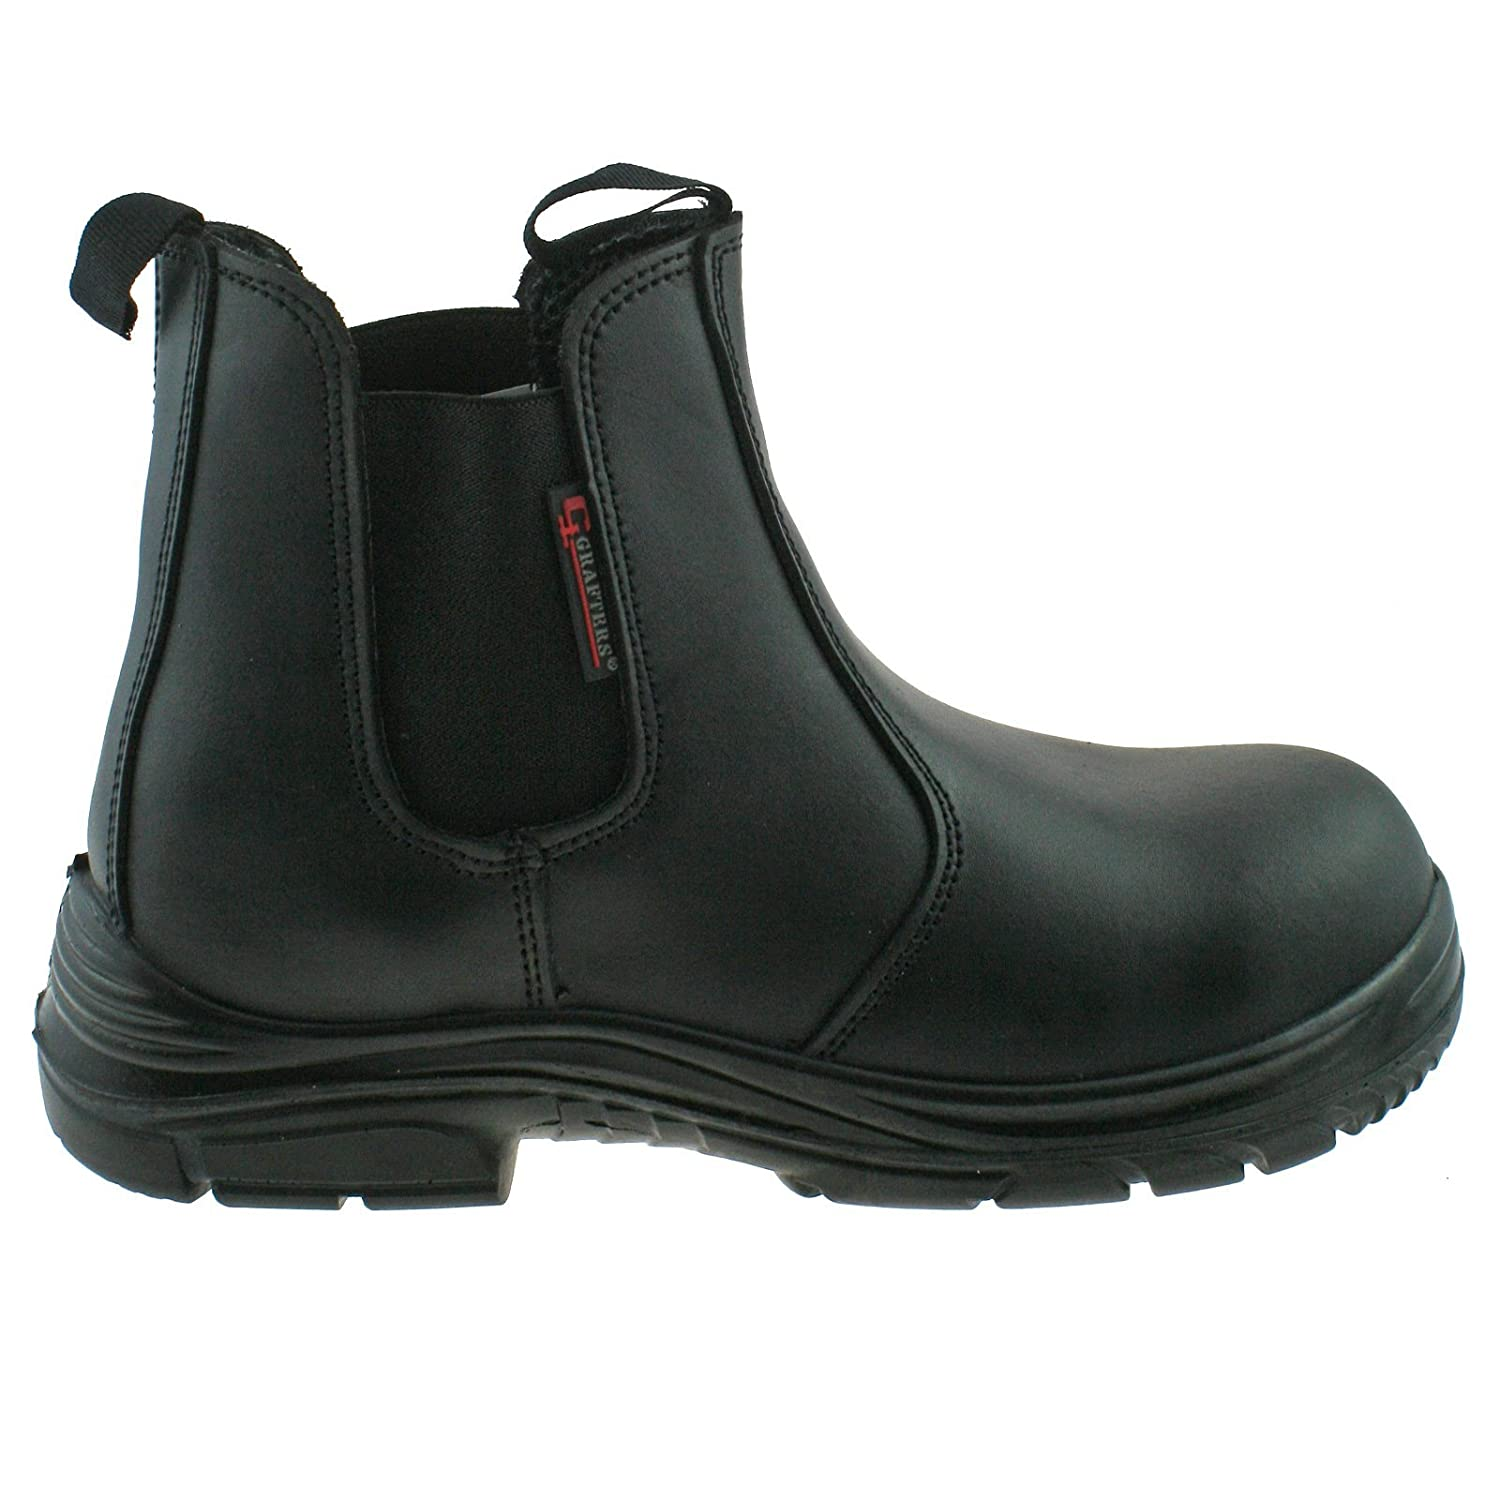 0b93c3733ad Grafters Mens Black Leather Wide Fitting Safety Dealer Boots Size 6–13  M9502A